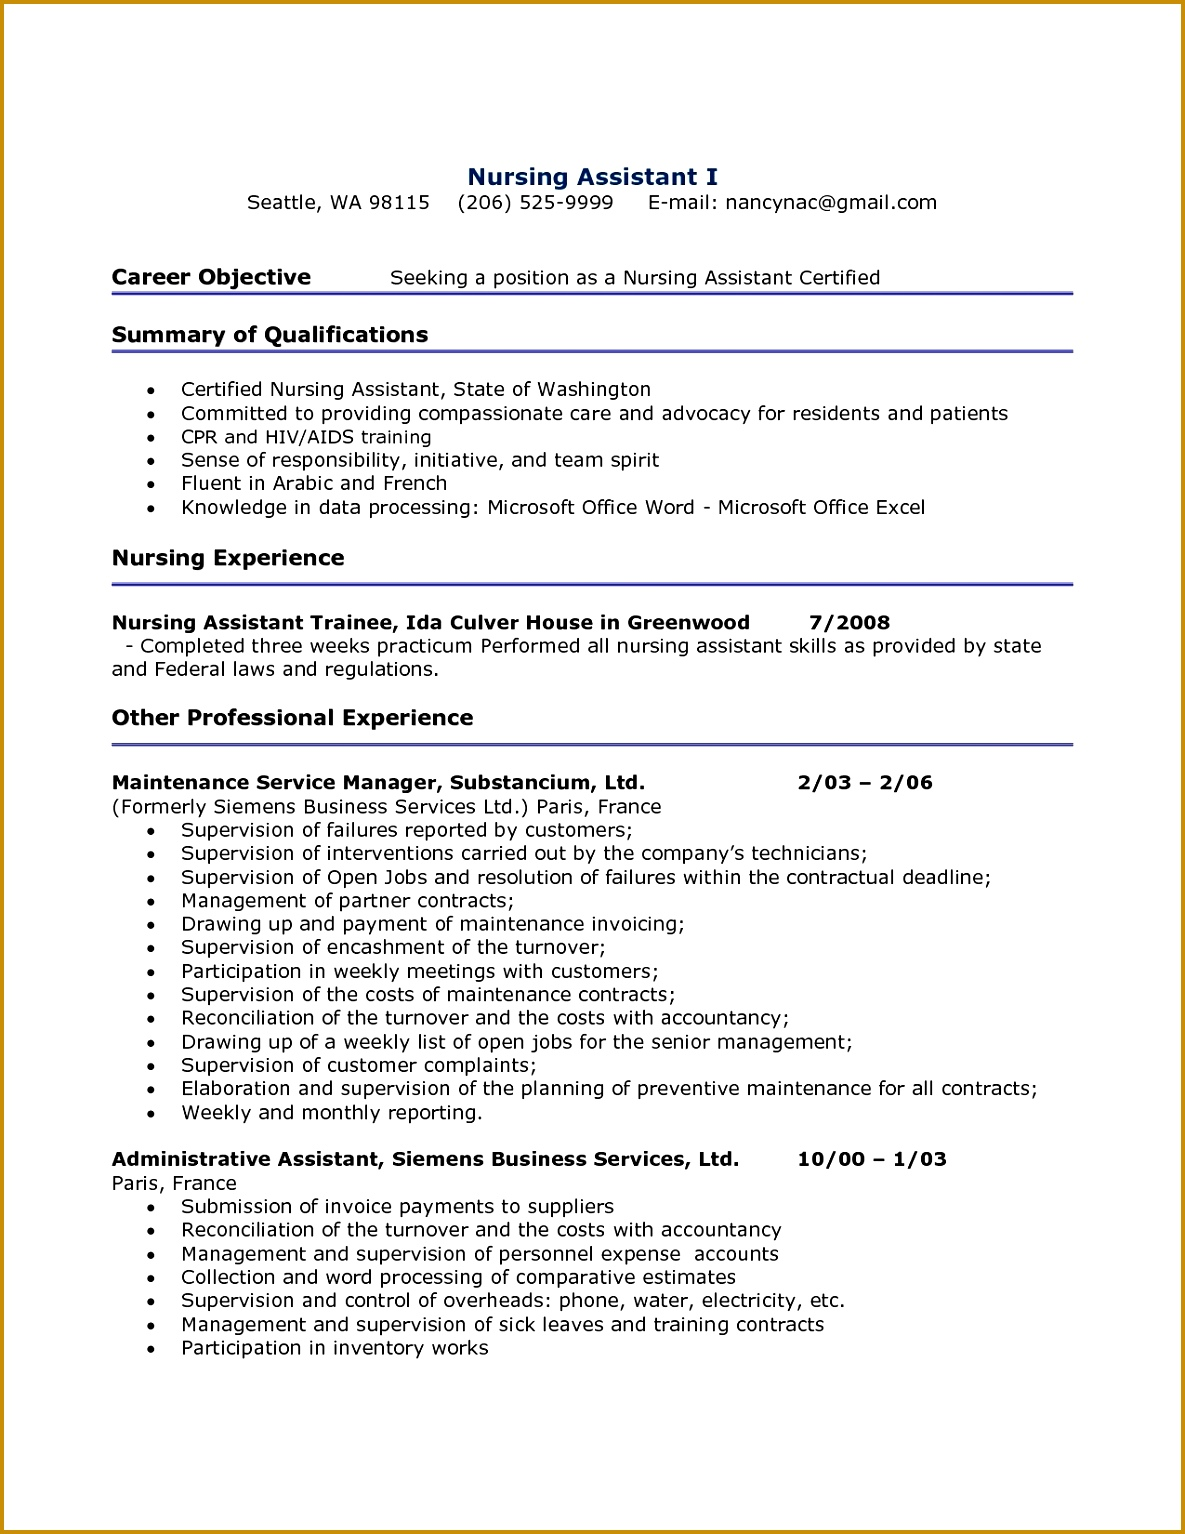 latest resume format recent resume format awesome i pinimg 1200x da 0d 1a shalomhouse of latest 28 Inspirational Mailing 15341185